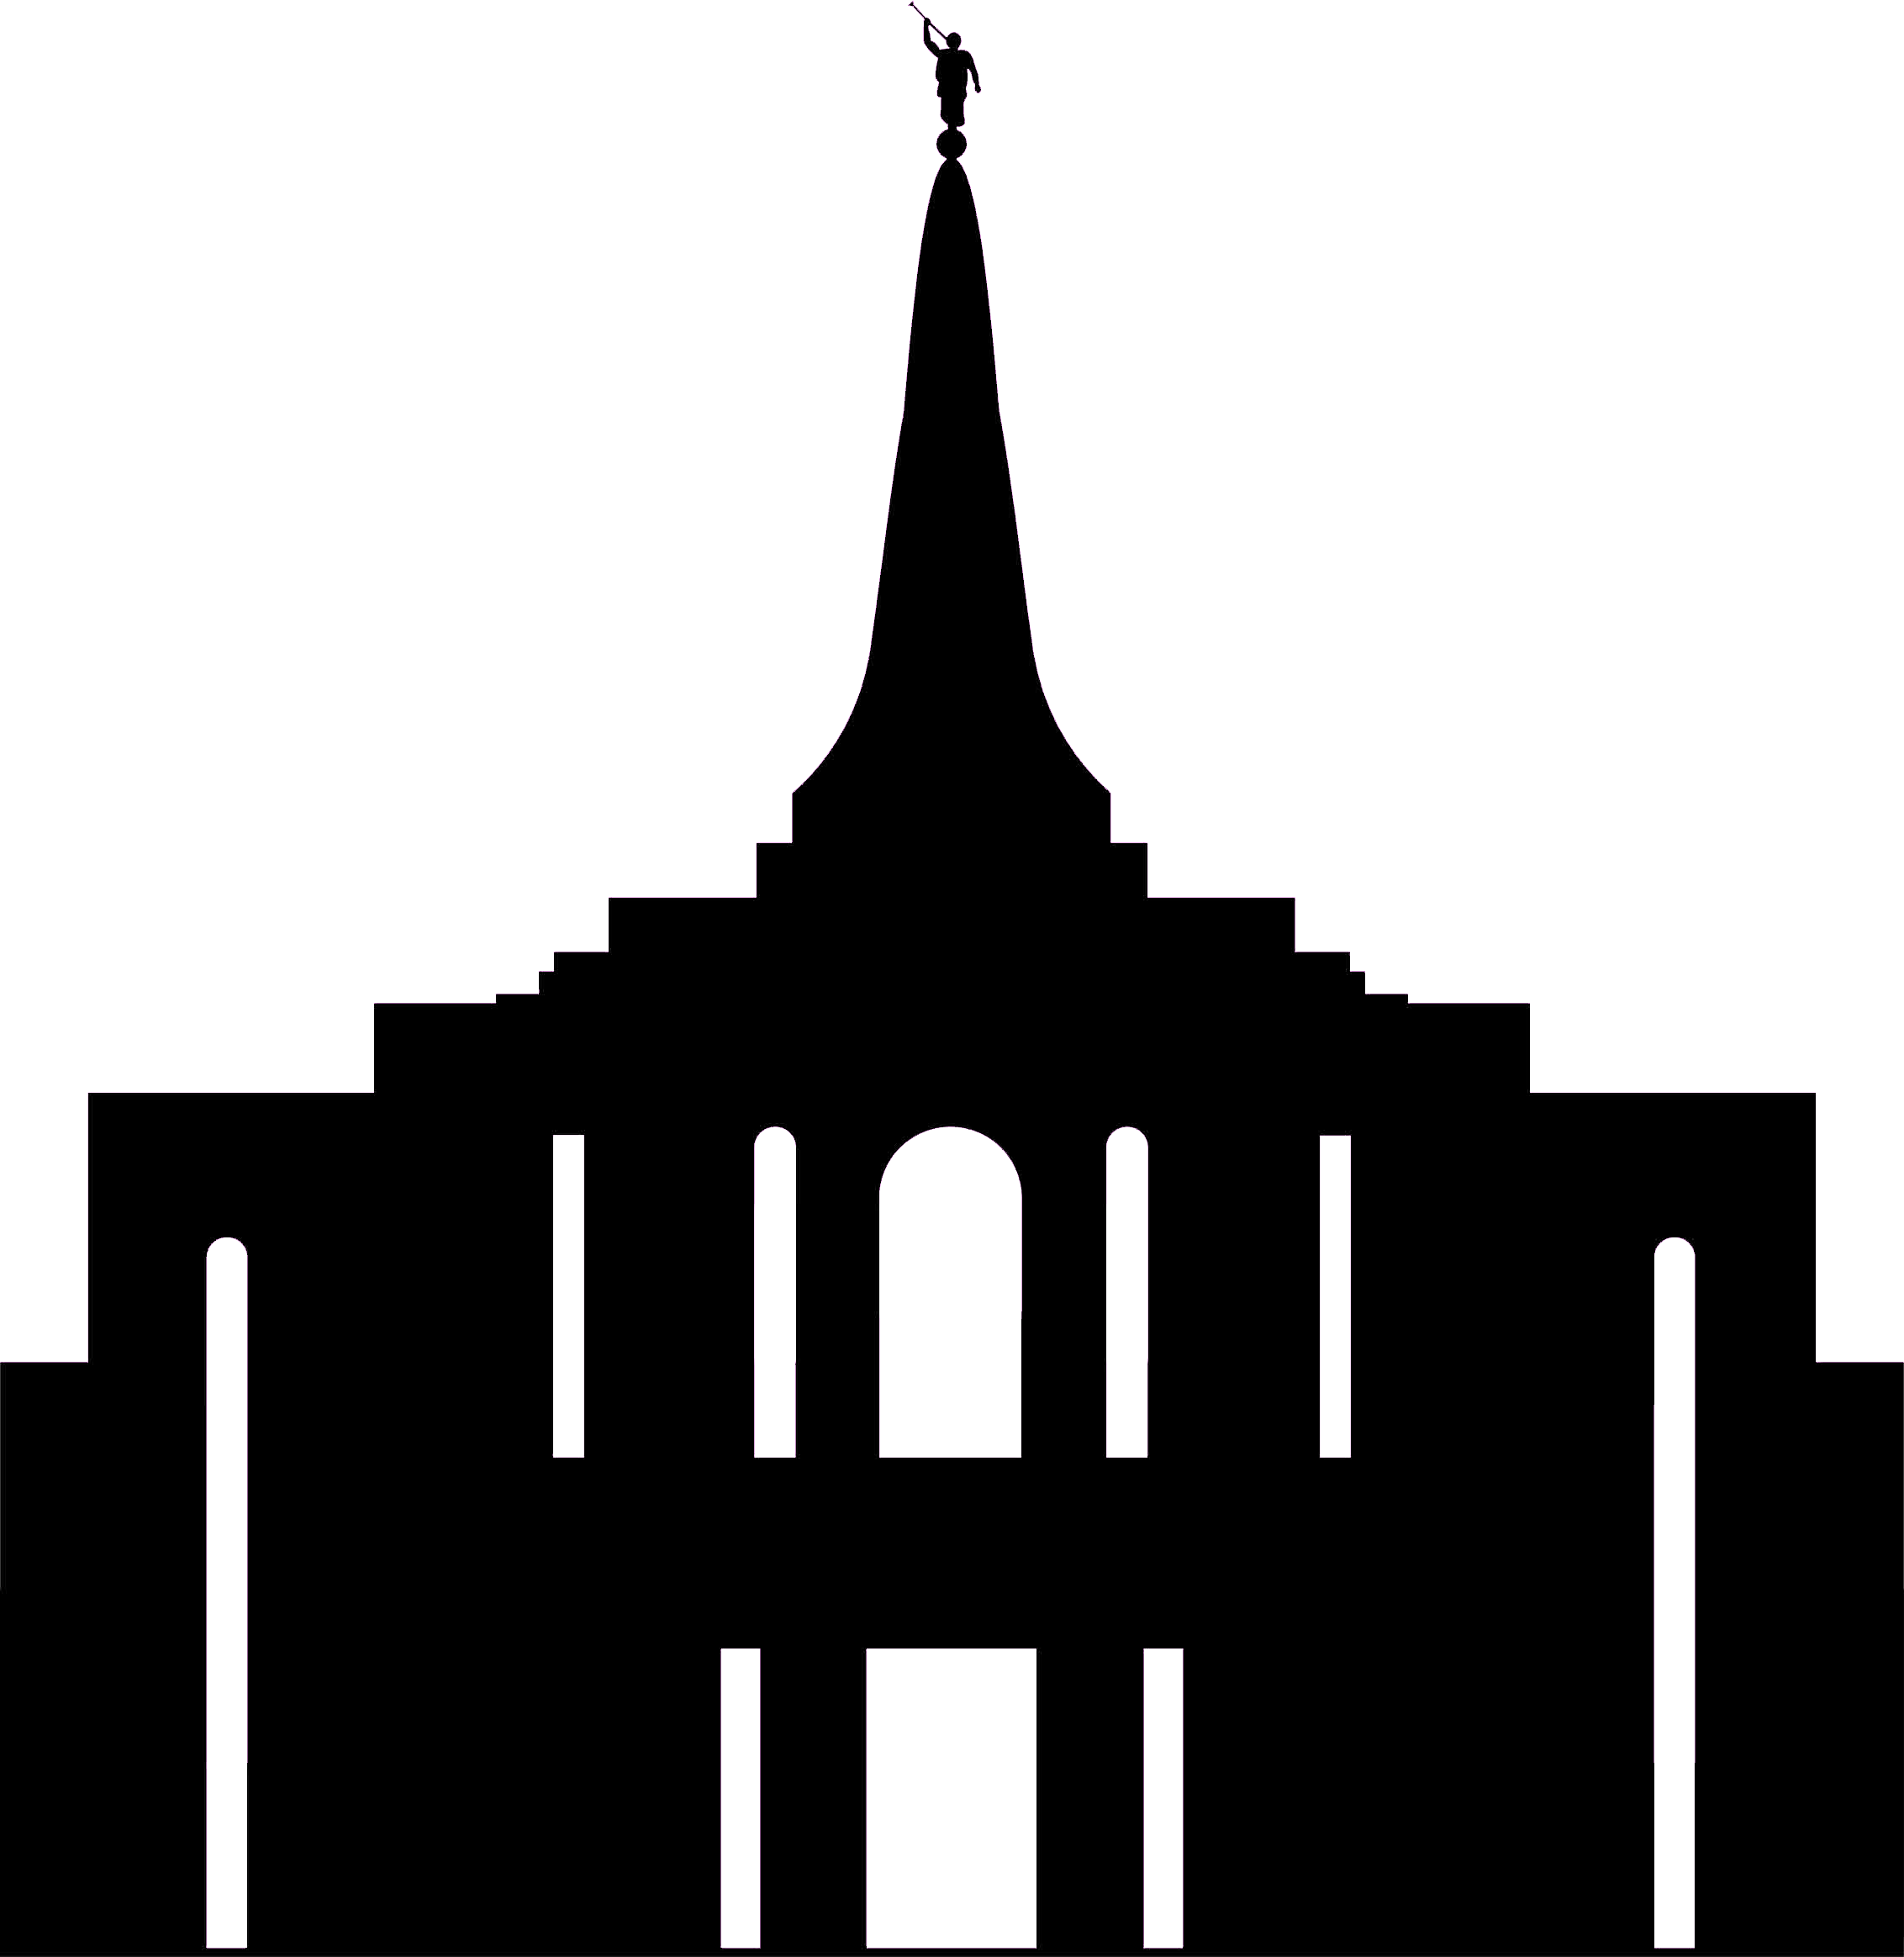 Snowflake as morman temple vector clipart image free library Gilbert Temple .png file Could come in handy for a temple ... image free library